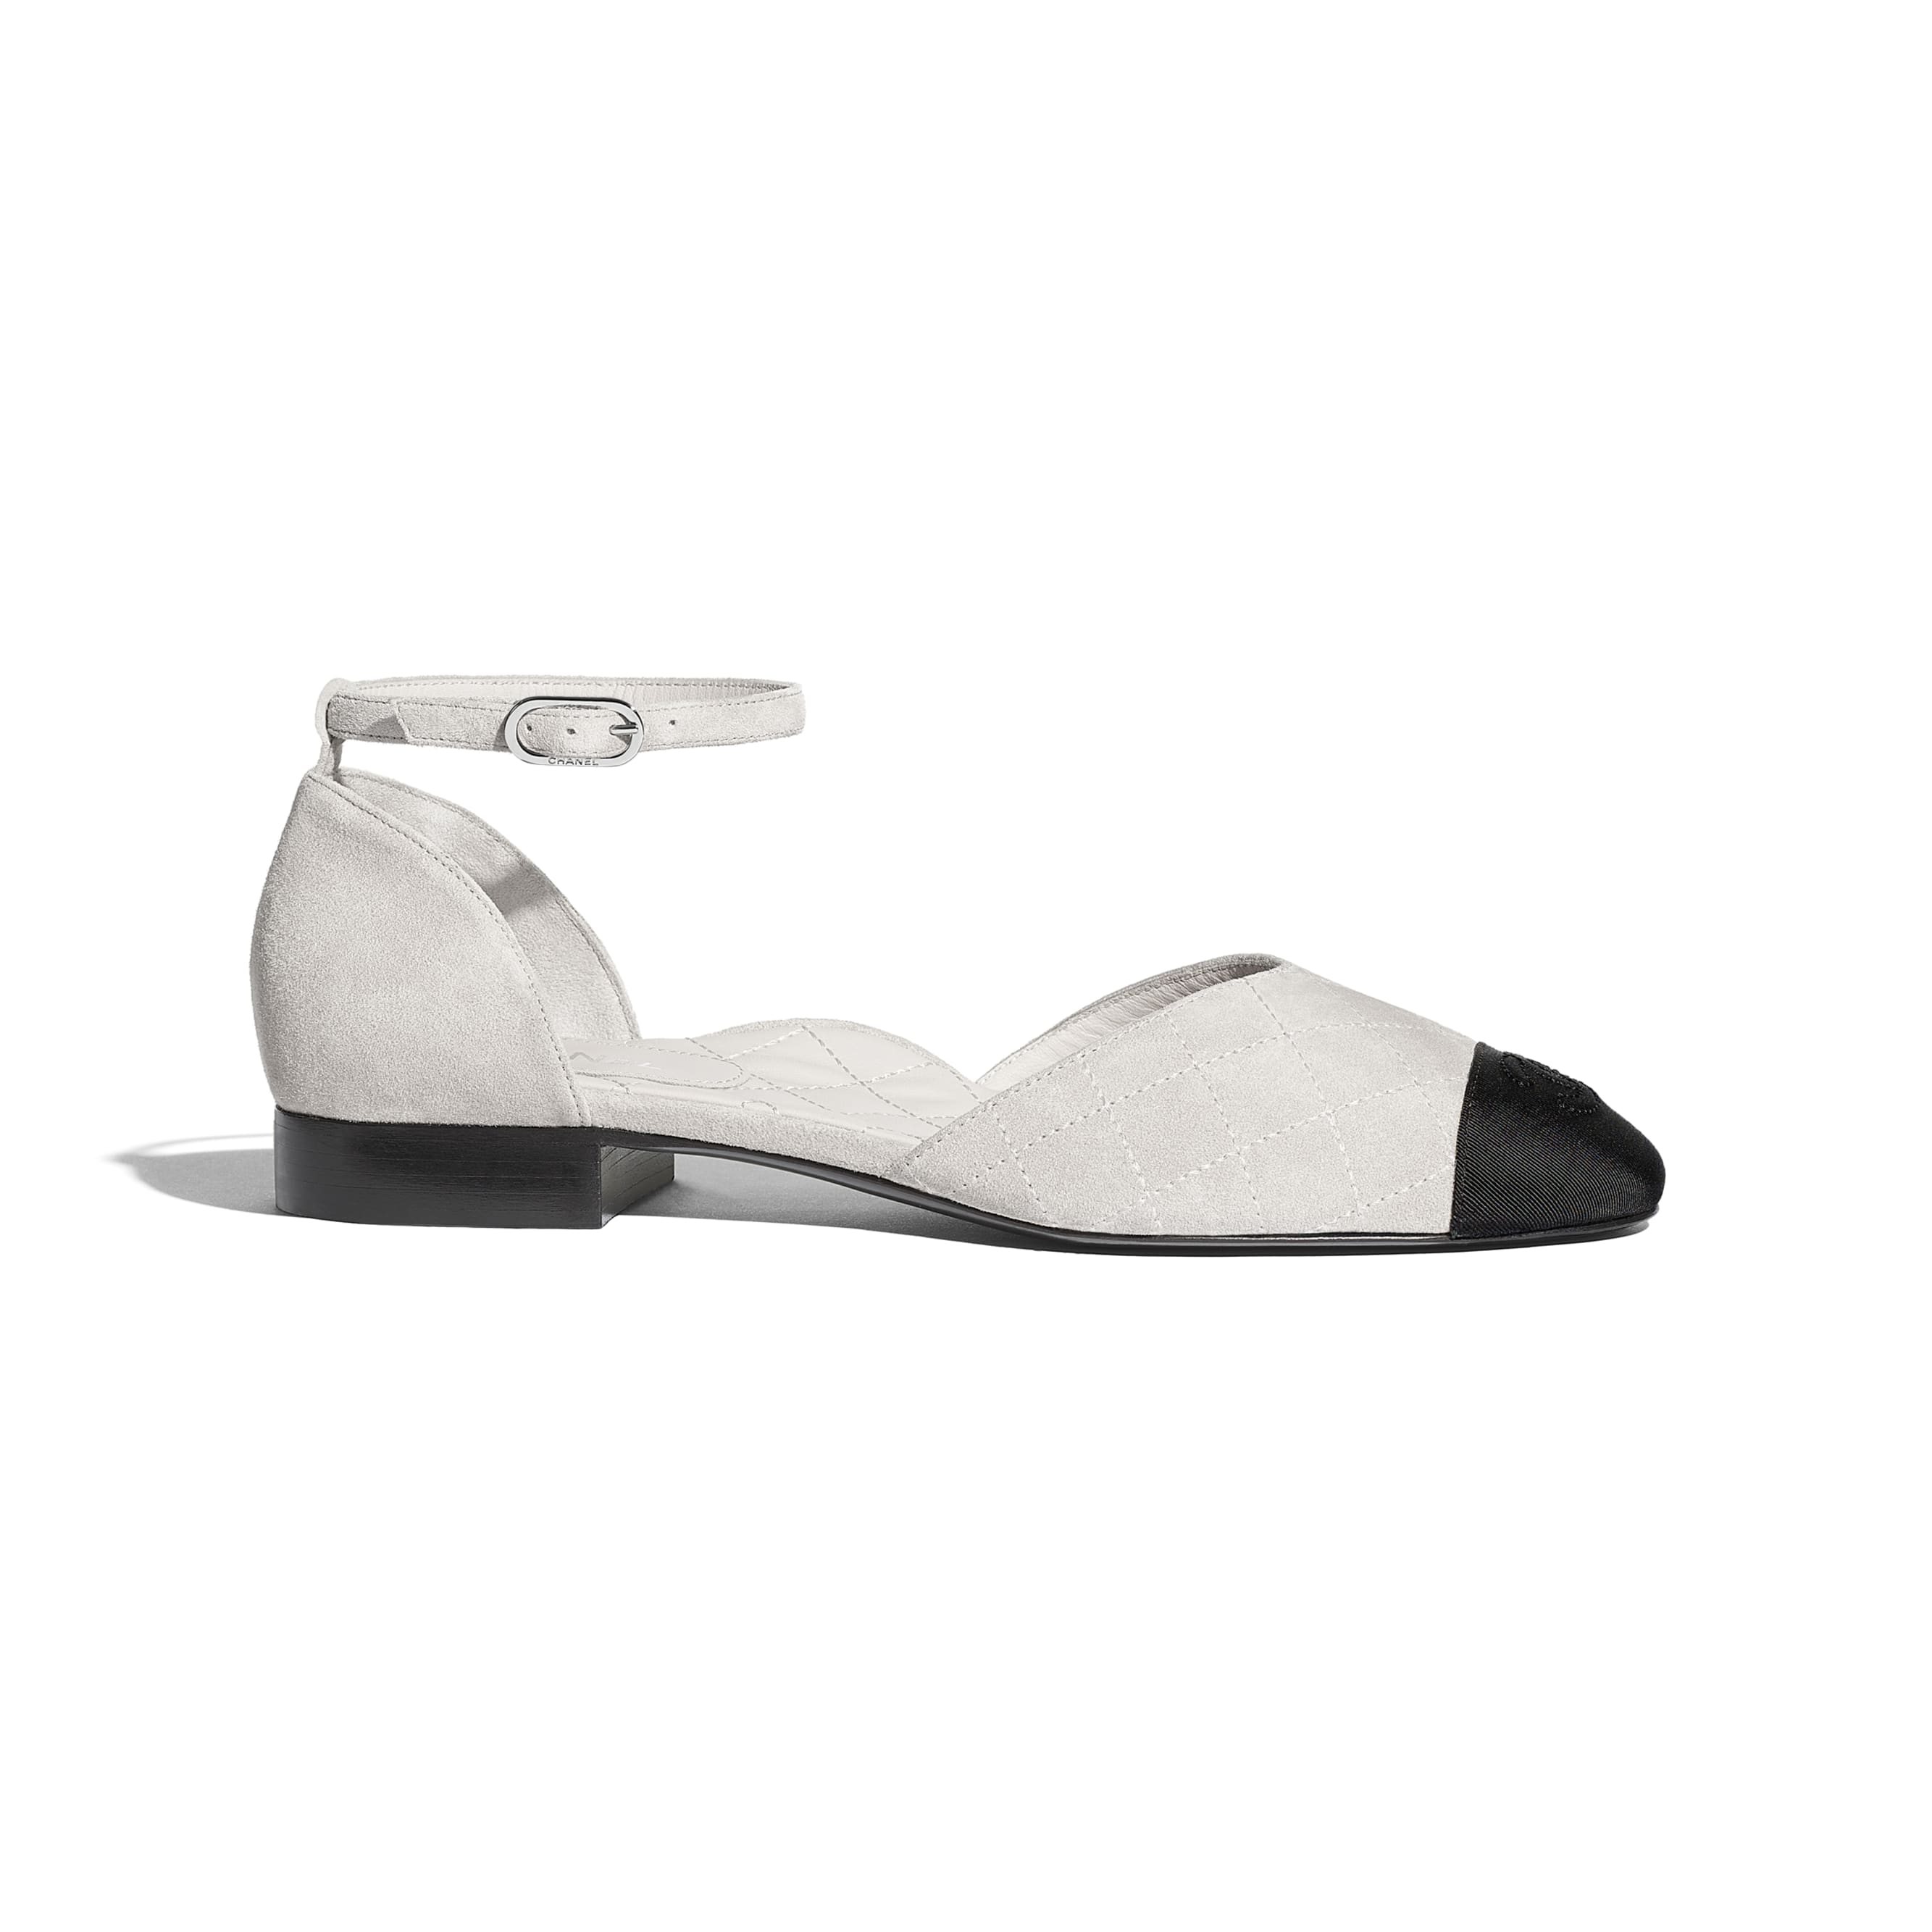 Mary Janes - Light Gray & Black - Suede Calfskin & Grosgrain - CHANEL - Default view - see standard sized version